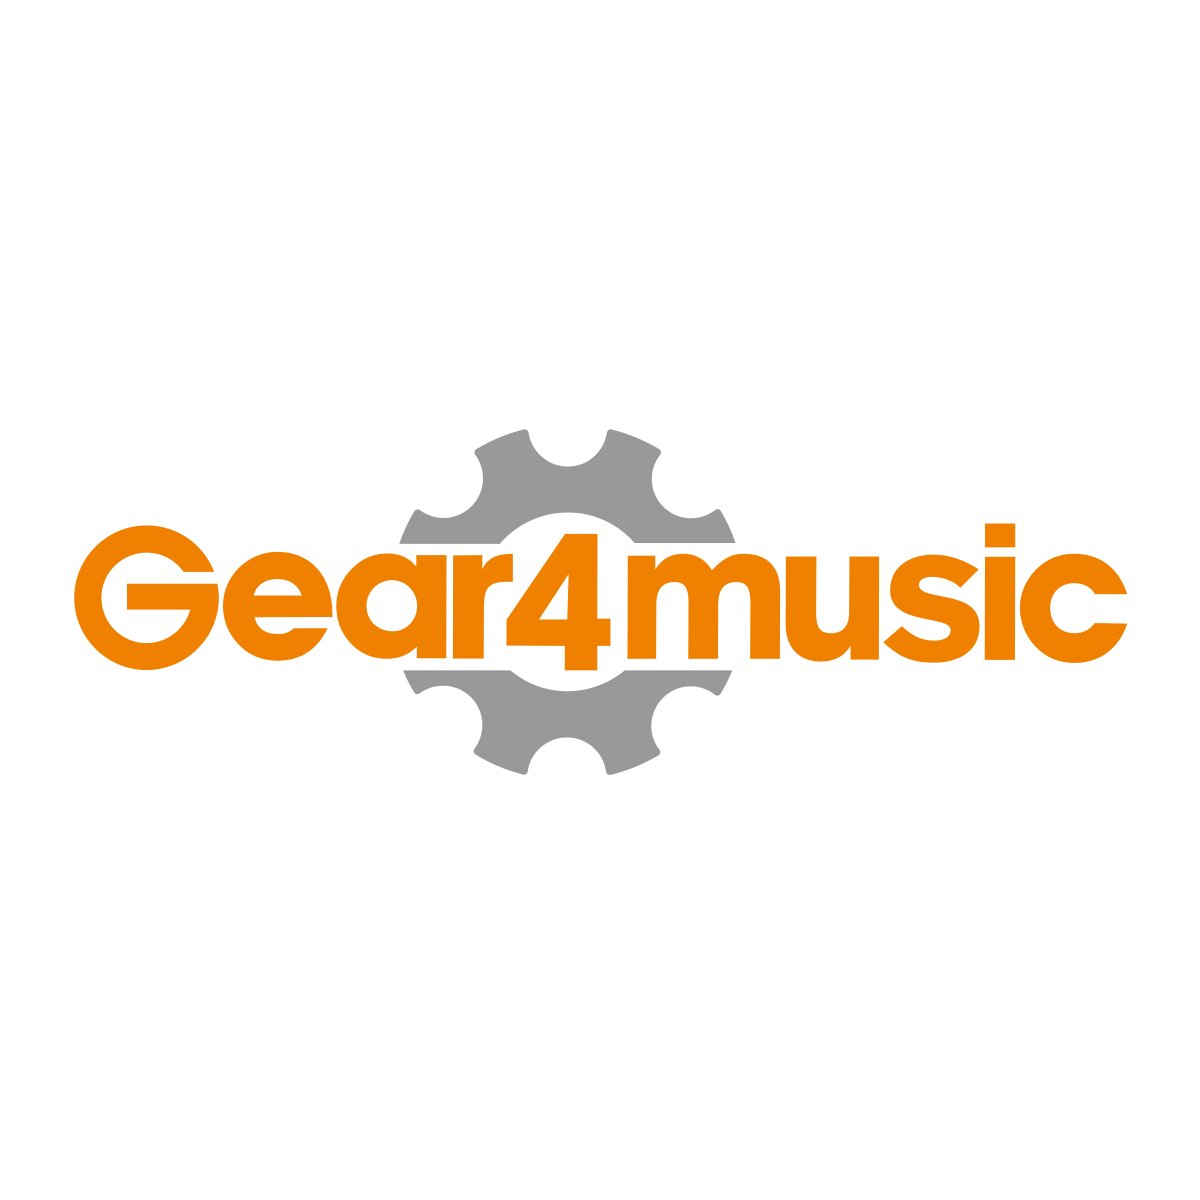 Cordes de guitare électrique par Gear4music